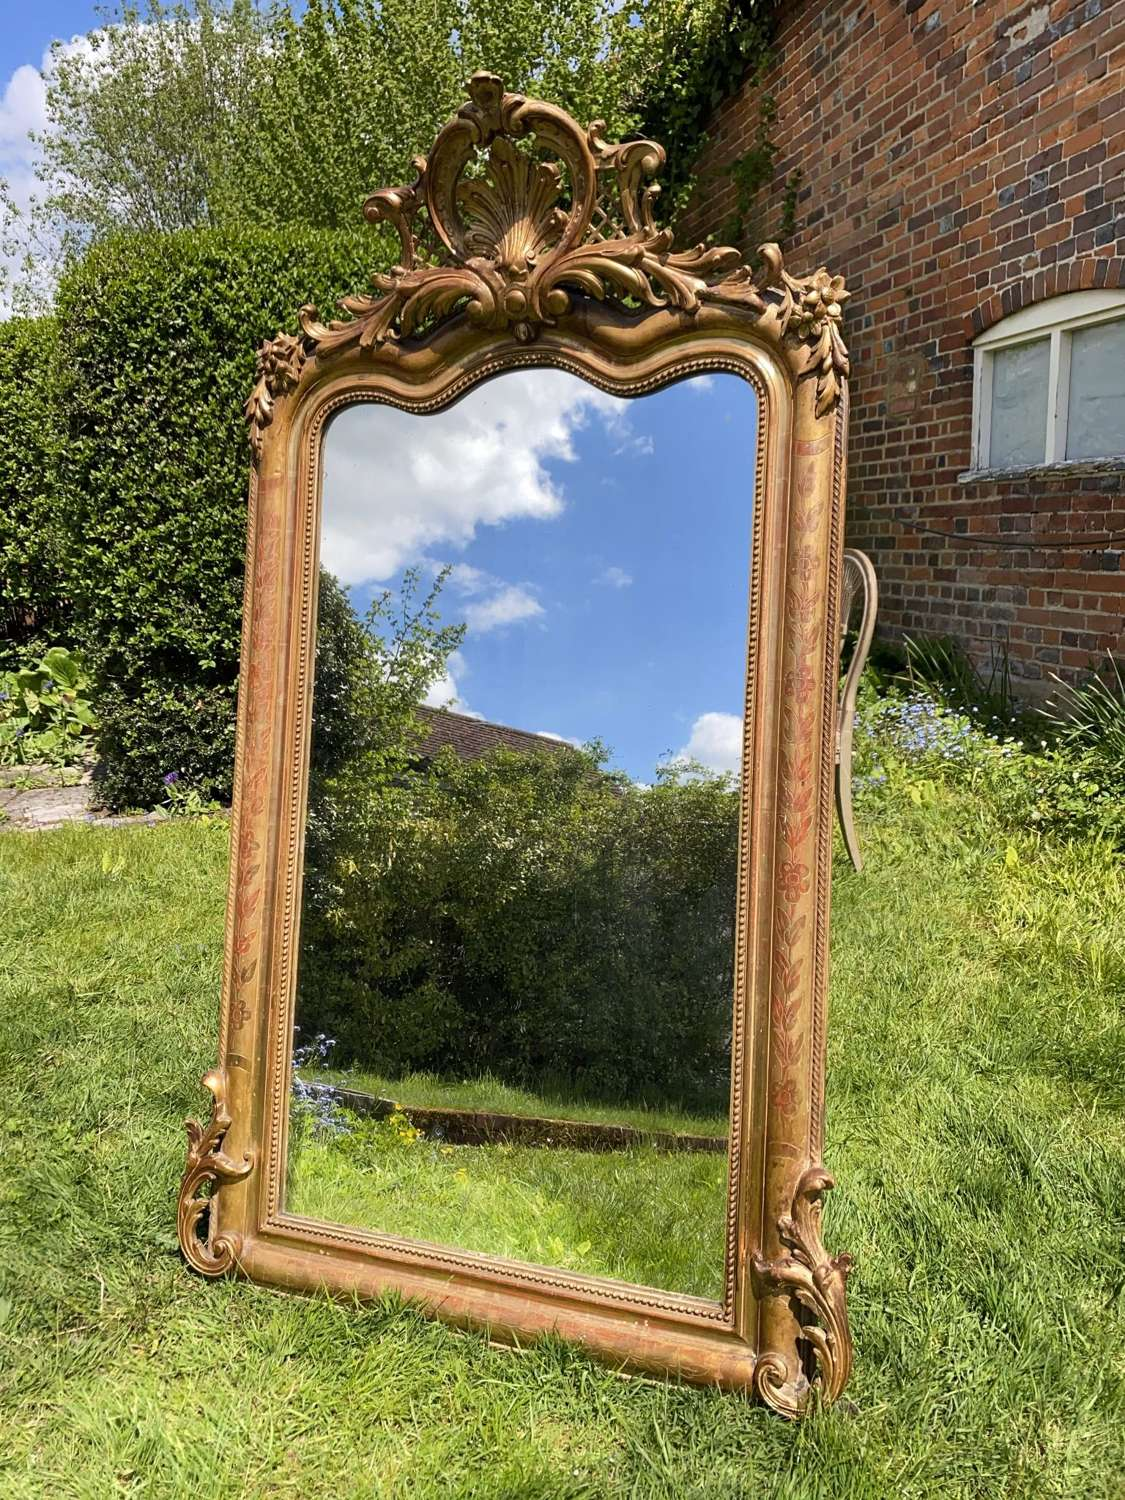 French shaped mirror